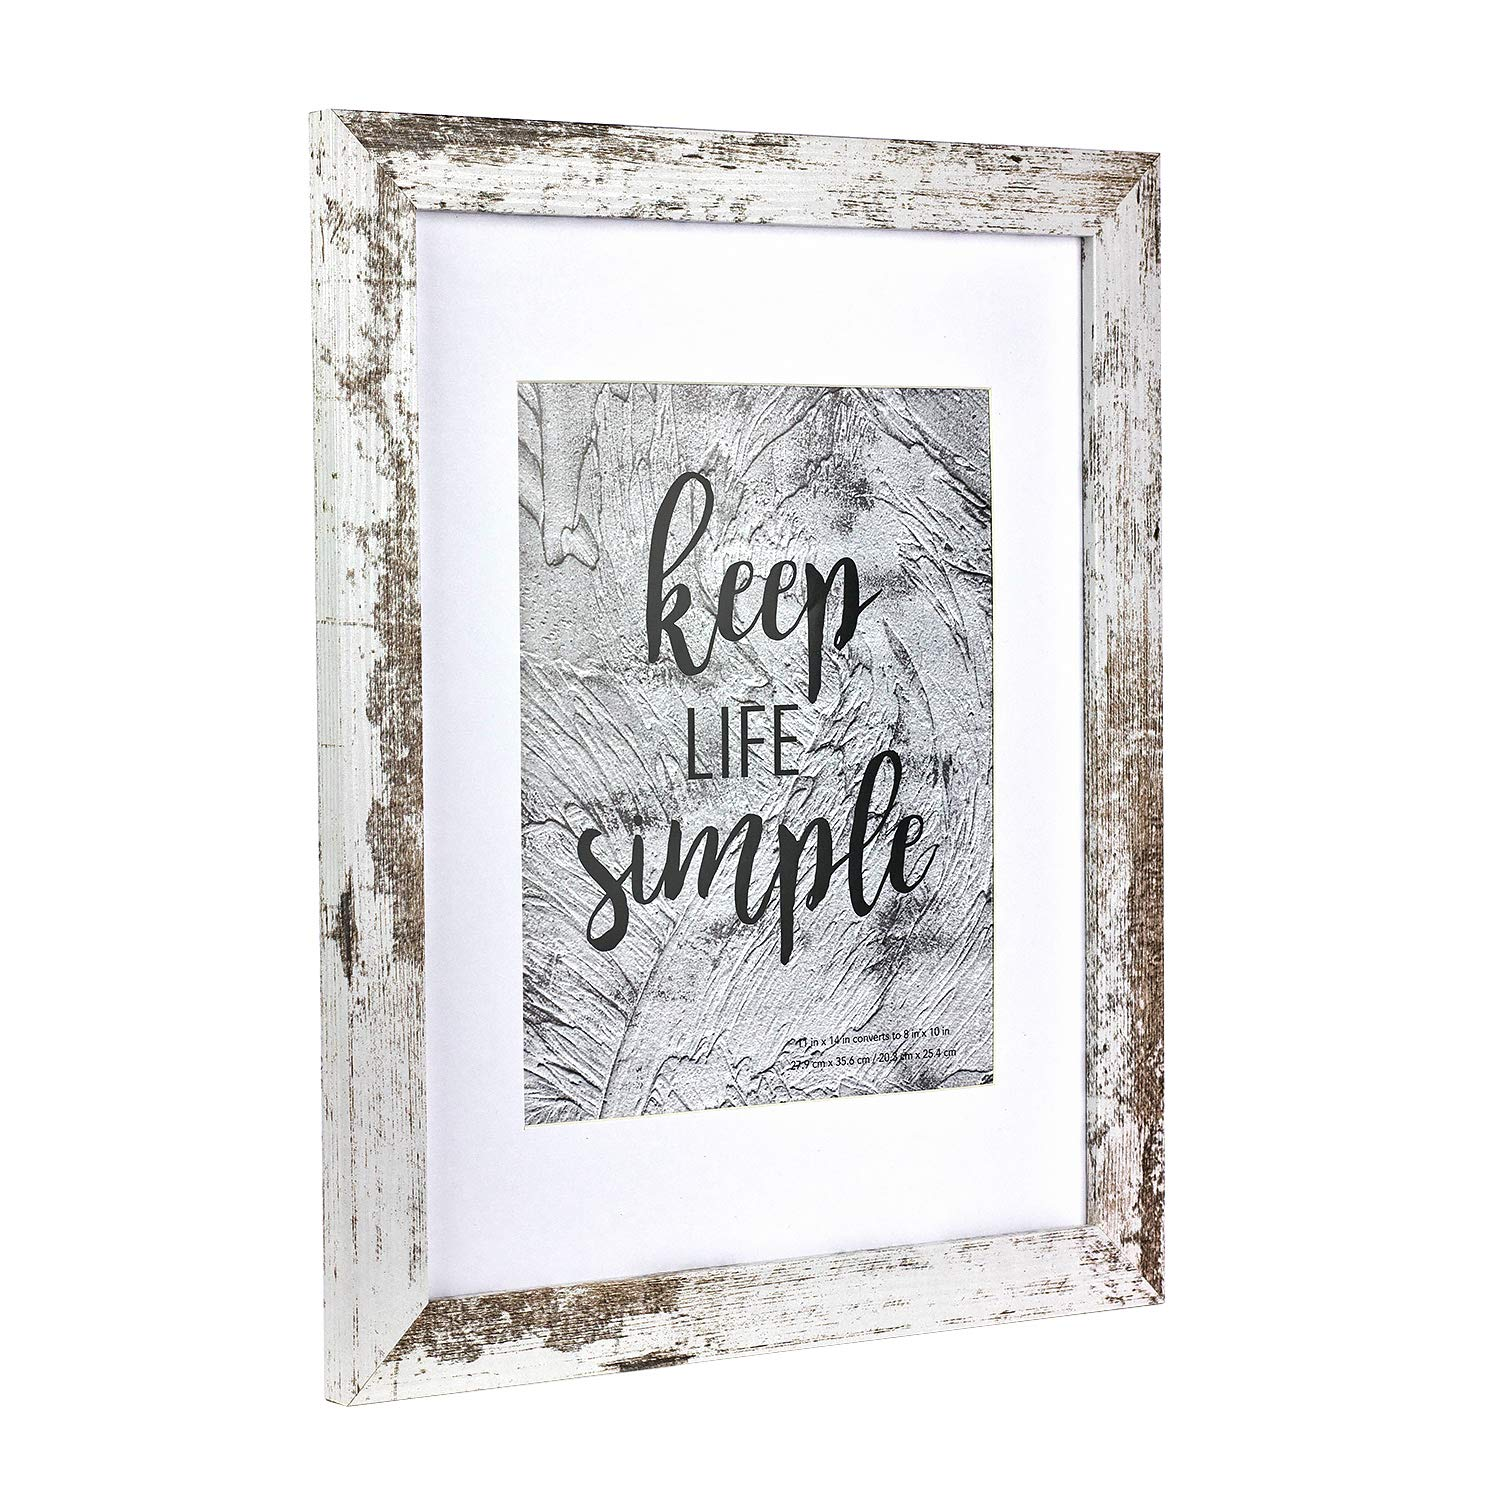 Home&Me 11x14 Picture Frame Rotten White 2 Pack - Made to Display Pictures 8x10 with Mat or 11x14 Without Mat - Wide Molding - Wall Mounting Material Included by Home&Me (Image #2)